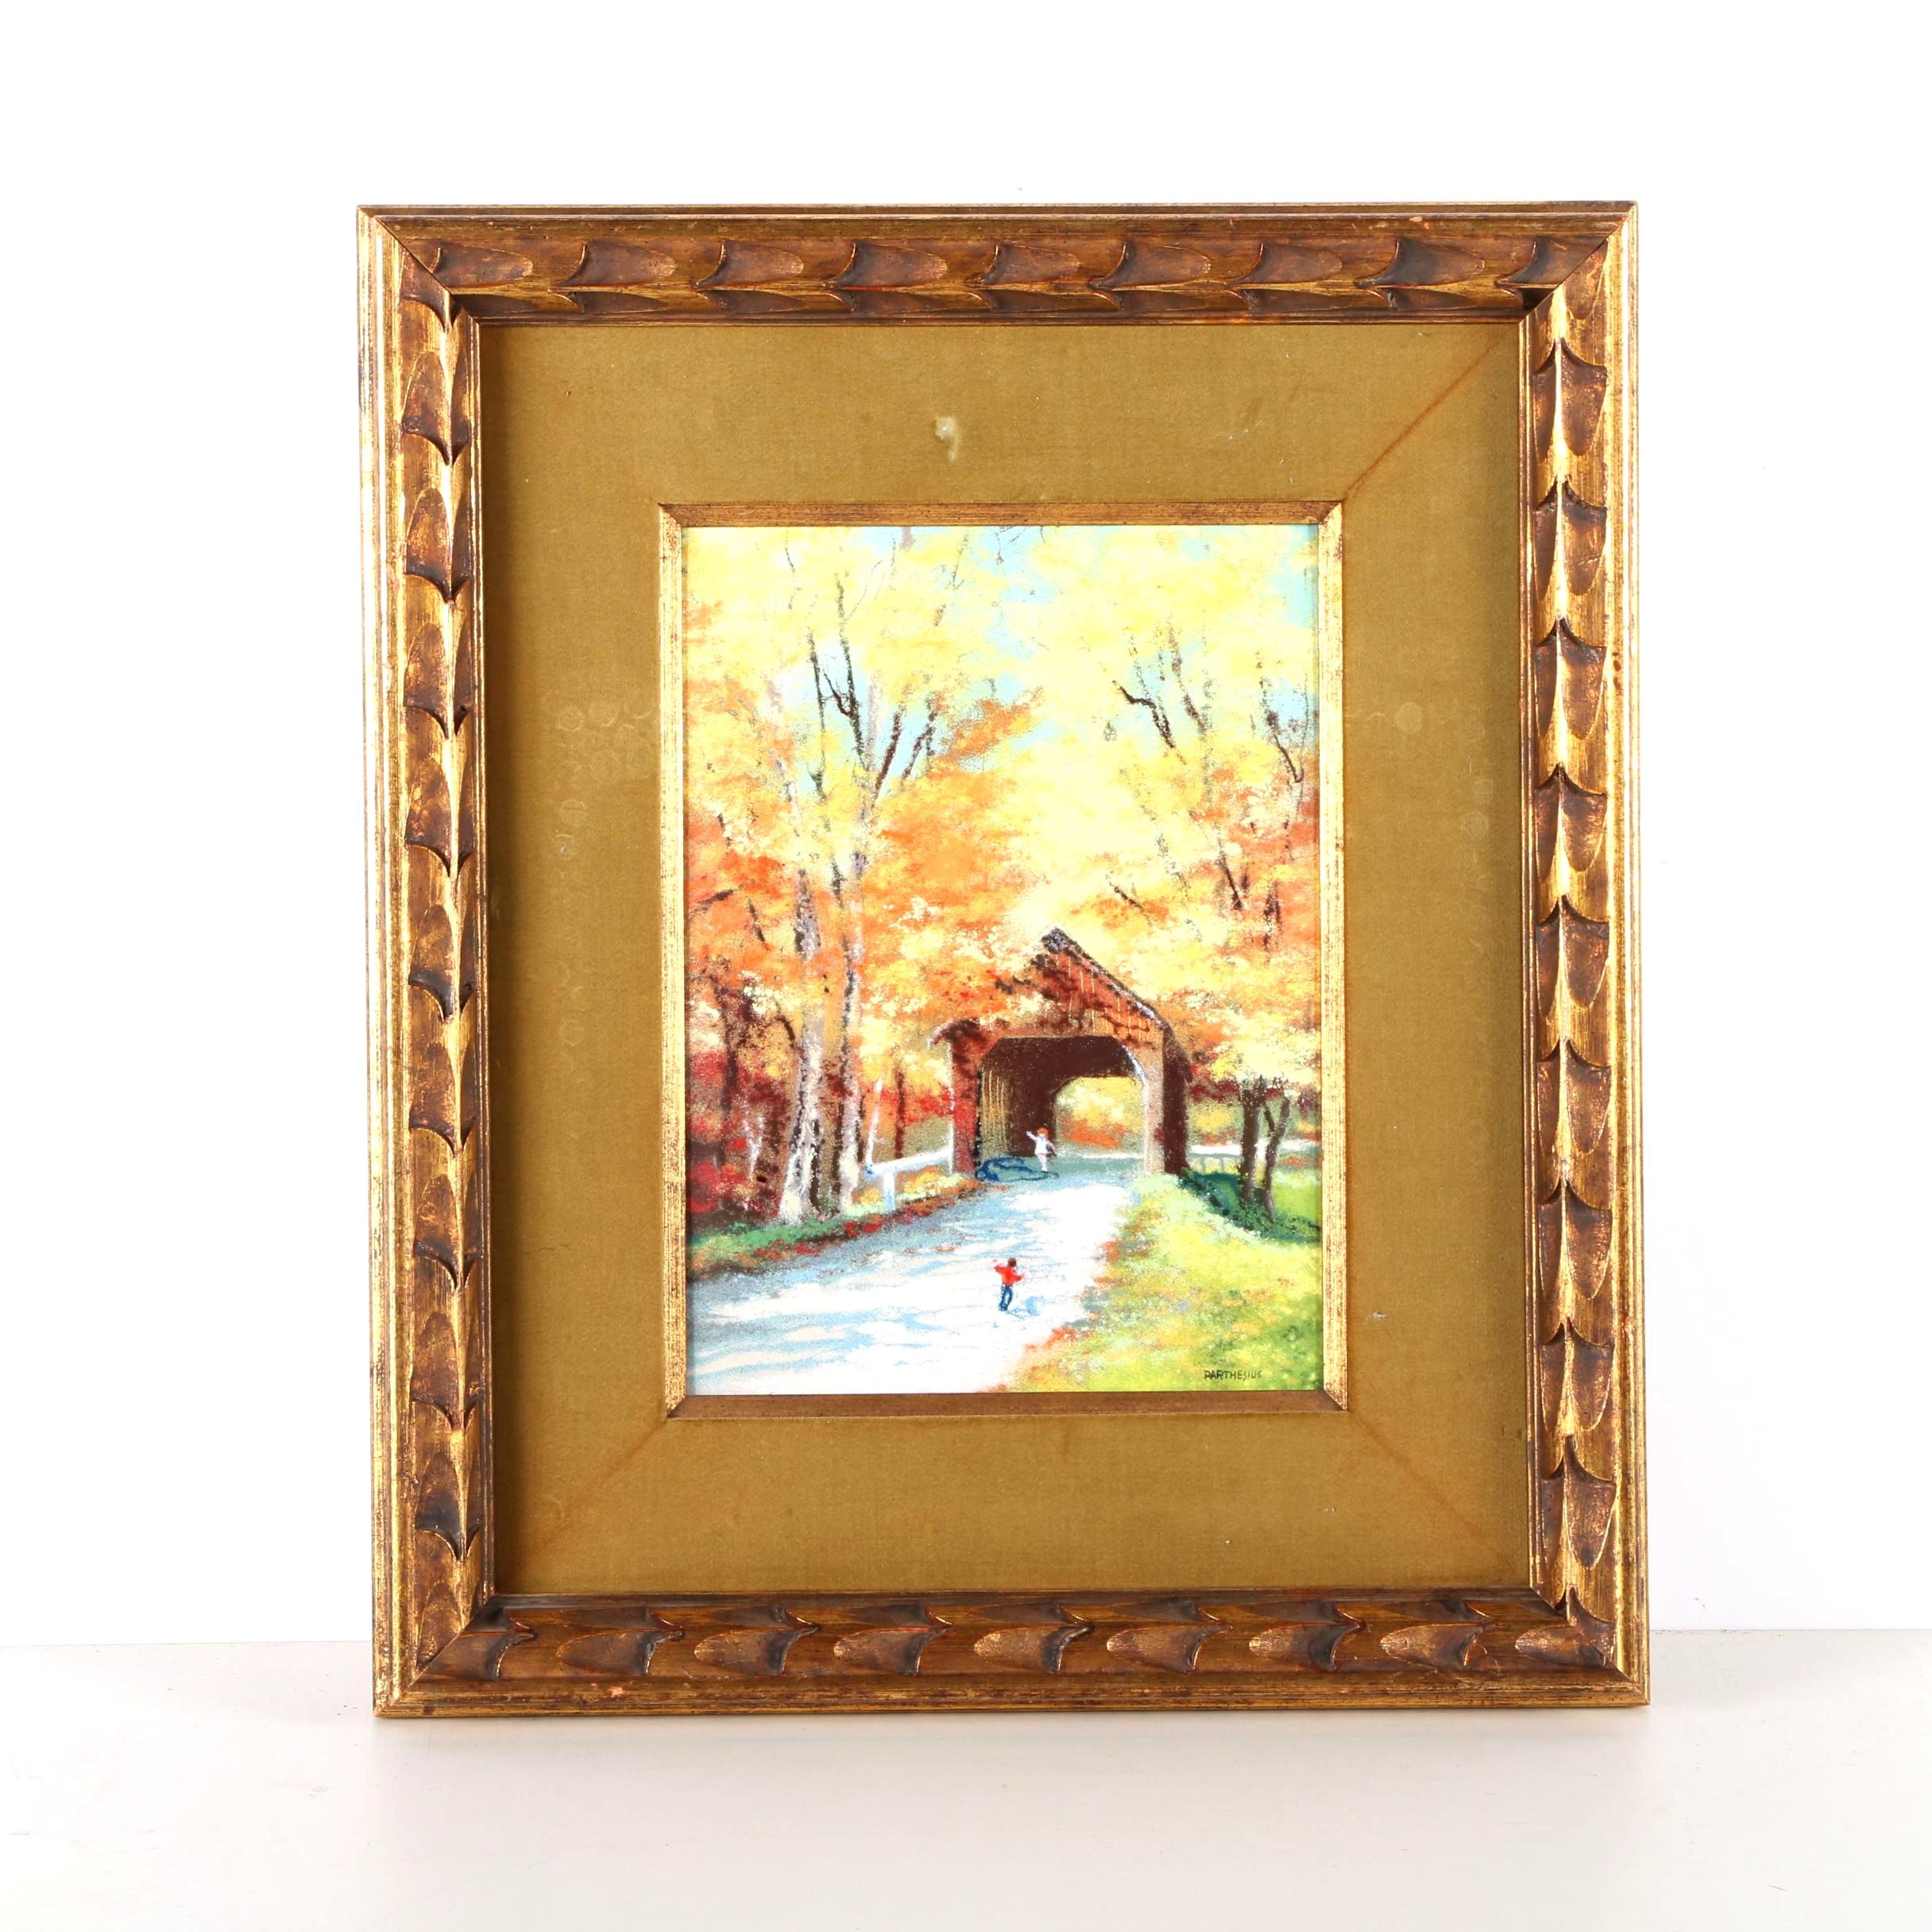 Charles Parthesius Enamel On Copper Painting Covered Bridge And Children